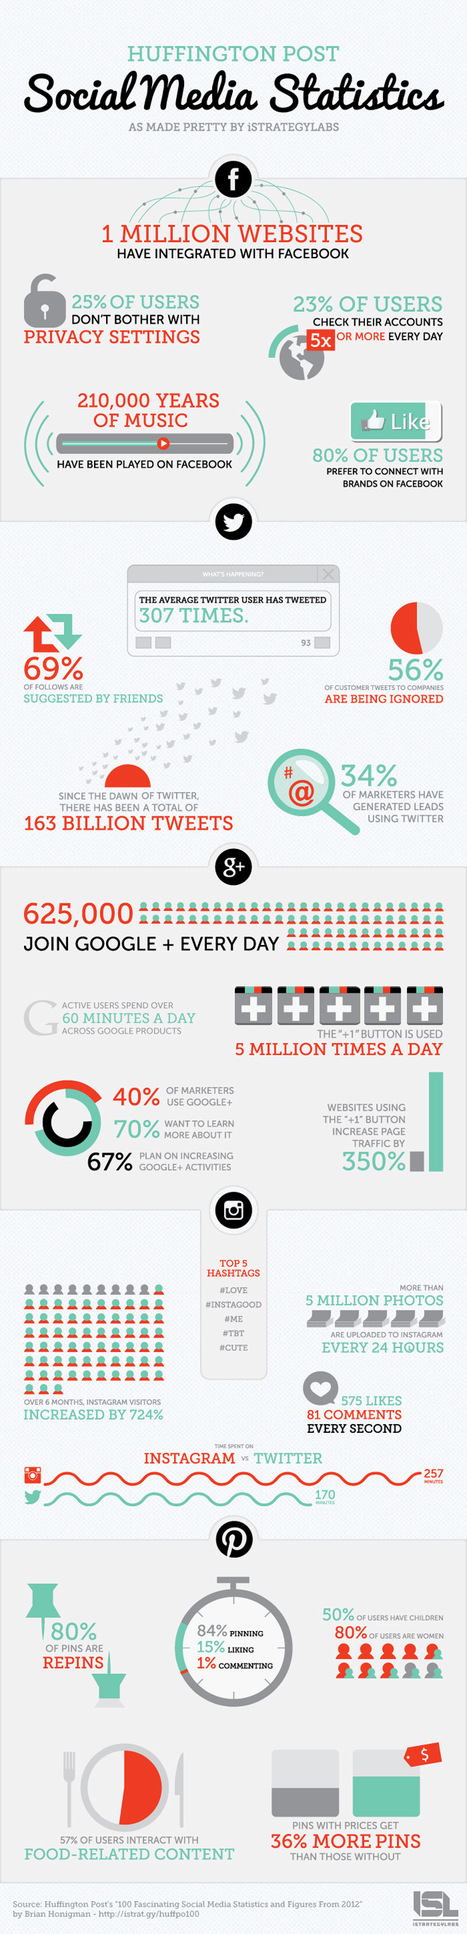 The Amazing Social Media Statistics 2012 – infographic | Better know and better use Social Media today (facebook, twitter...) | Scoop.it